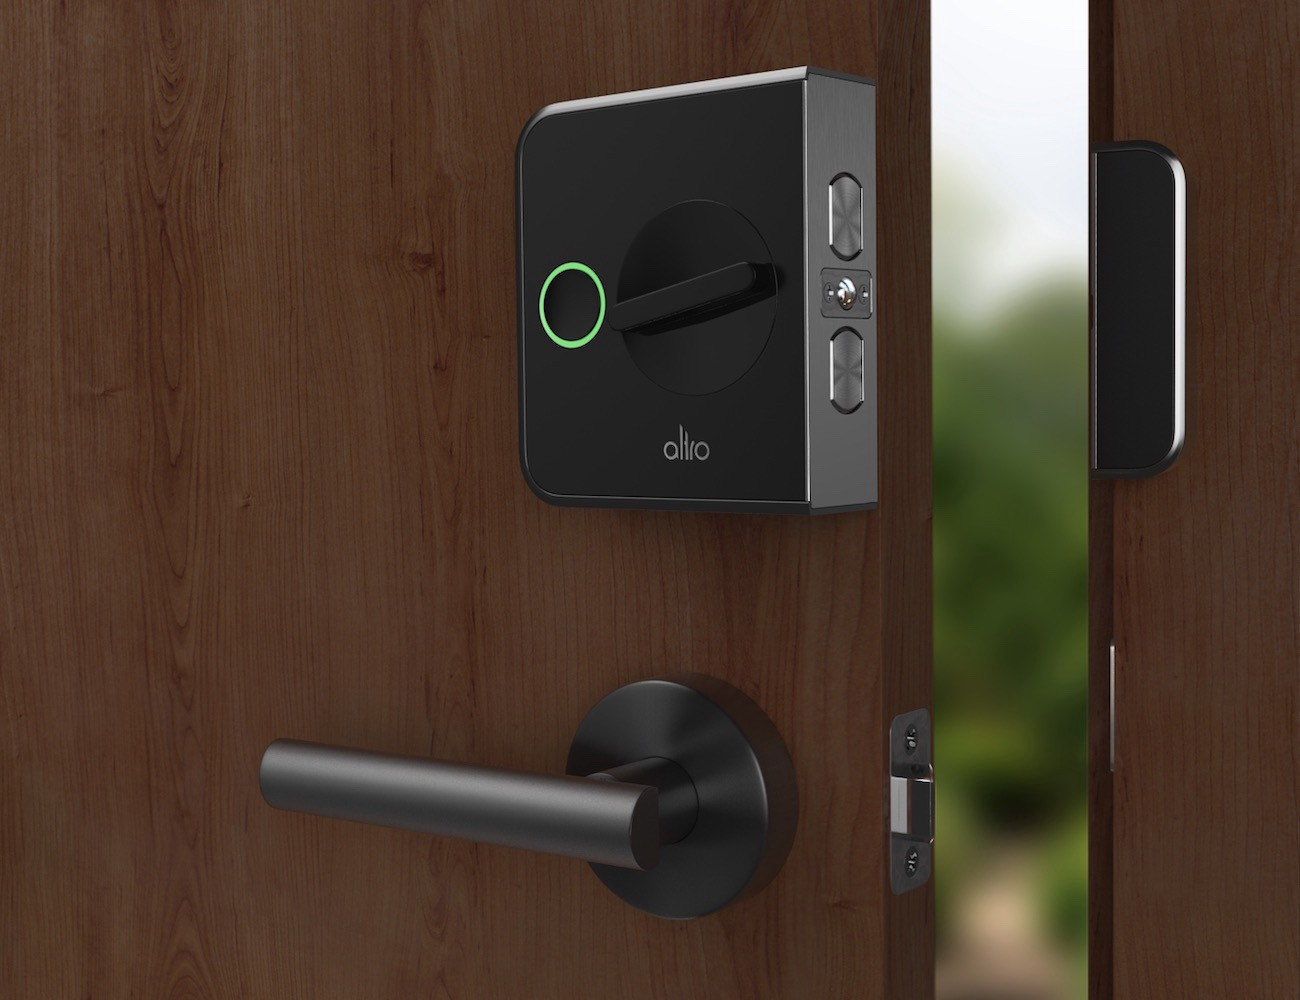 Le Meilleur 13 Smart Door Locks For Keeping Those Burglars Away Ce Mois Ci